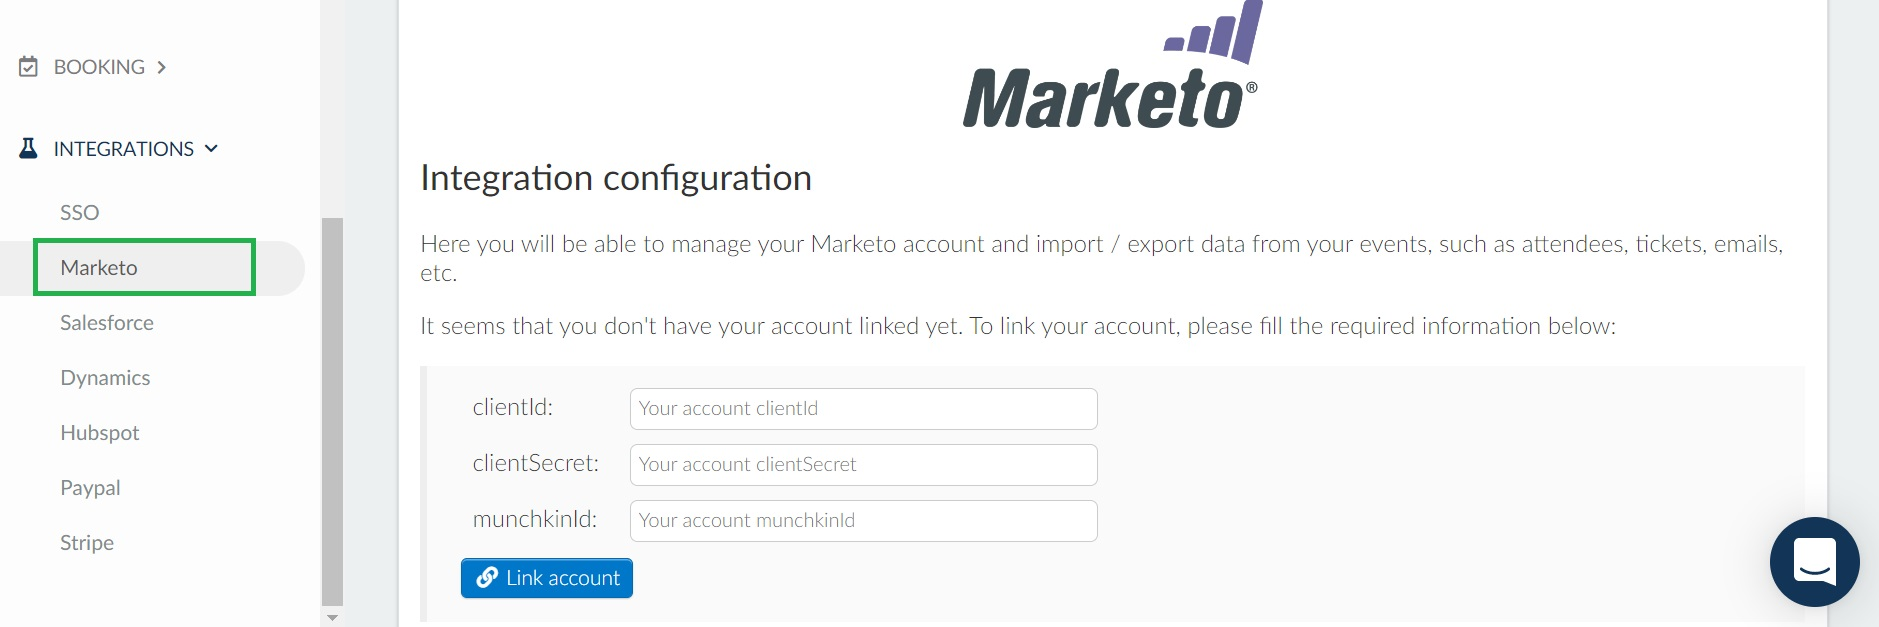 How to integrate the platform with Marketo